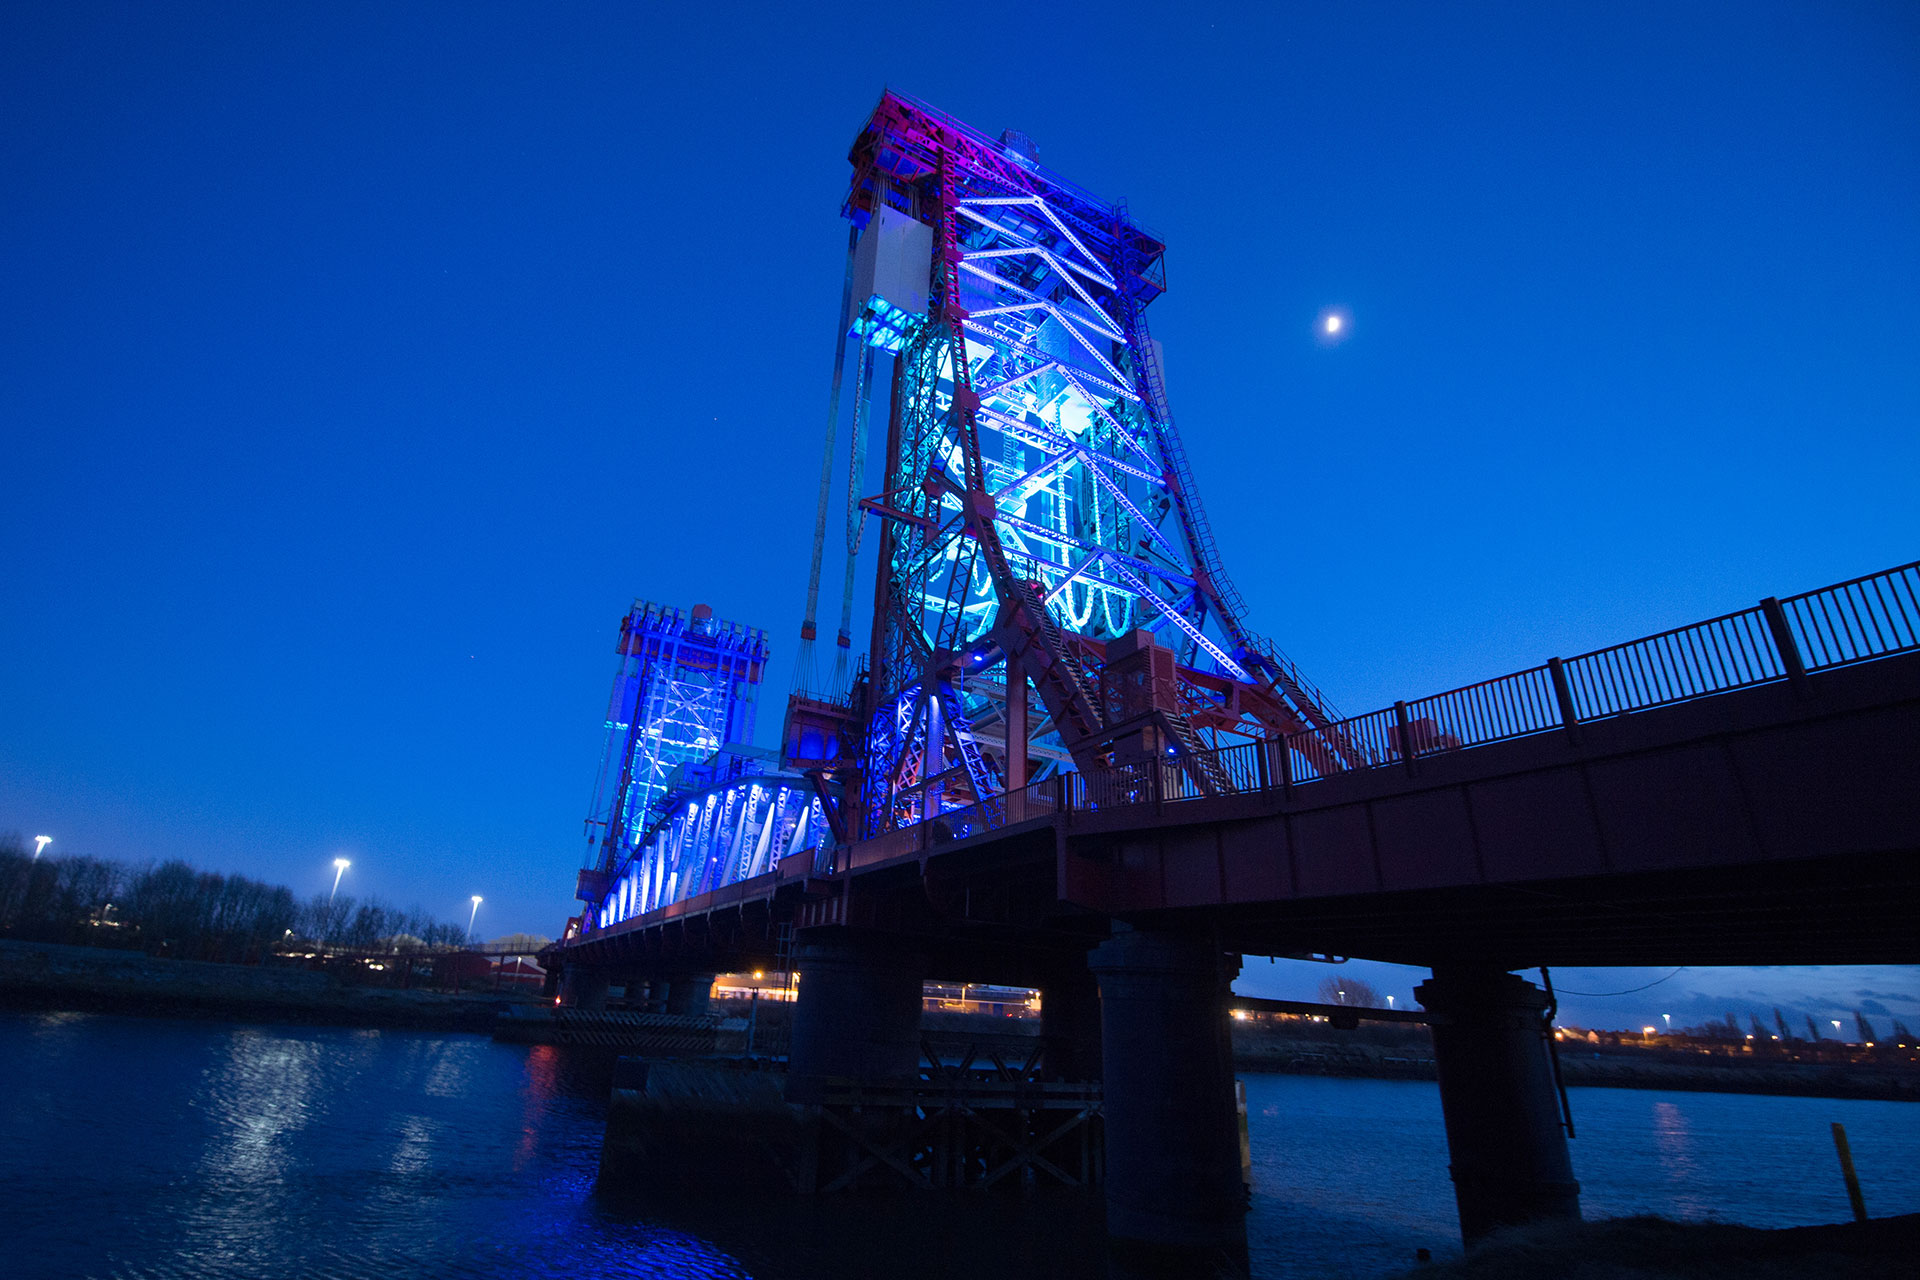 SCULP floodlights controlled by DMX provide a colourful lighting scheme for Tees Newport Bridge